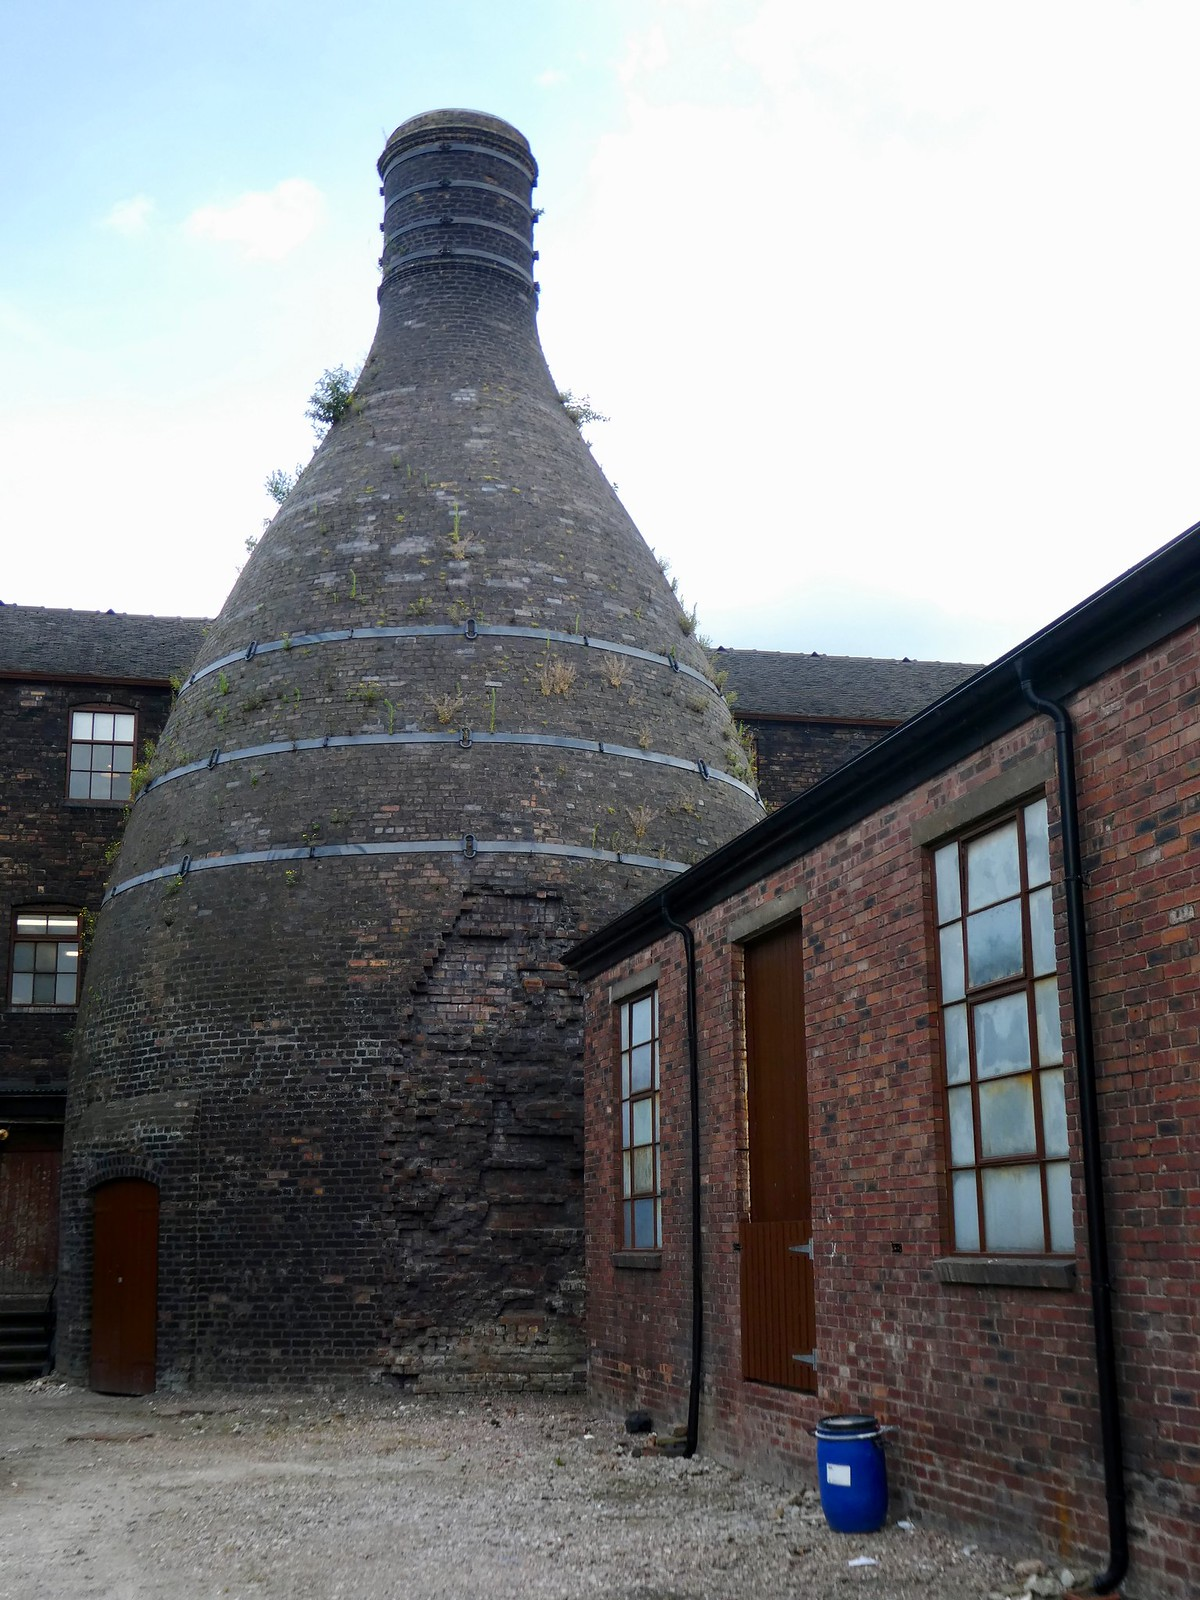 Bottle oven, Middleport Pottery, Burslem